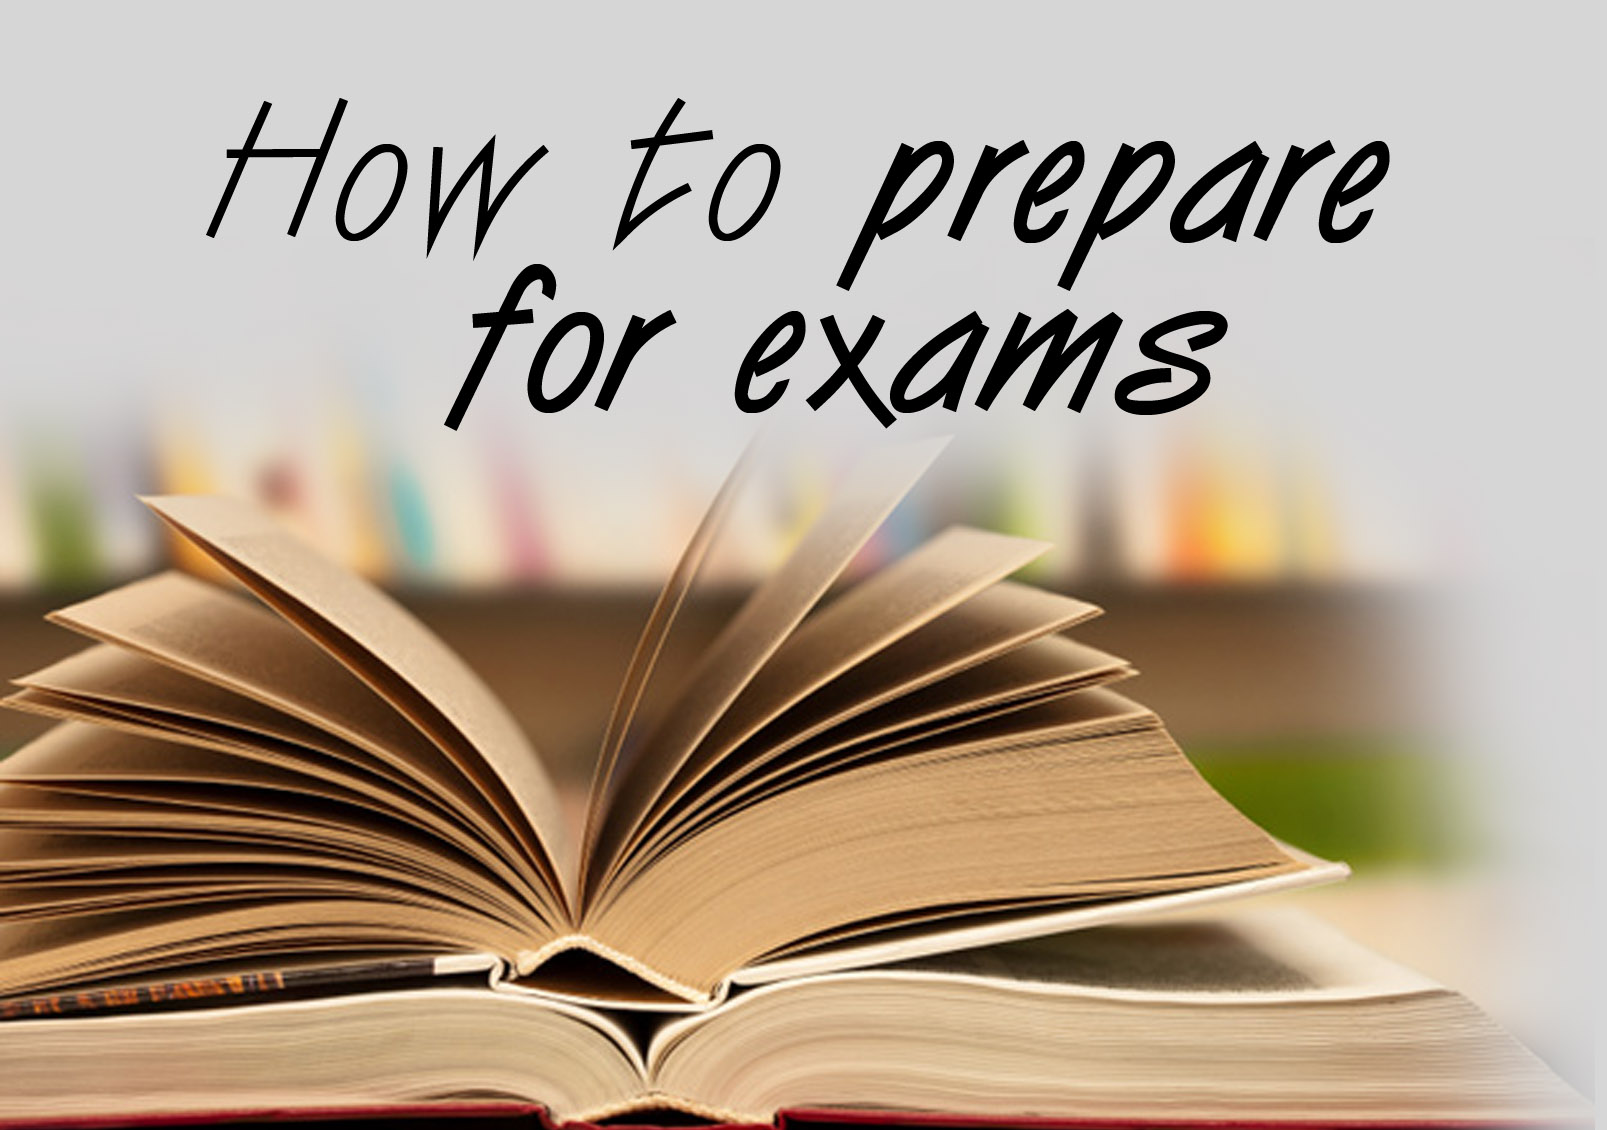 Prepare yourself properly for an exam!